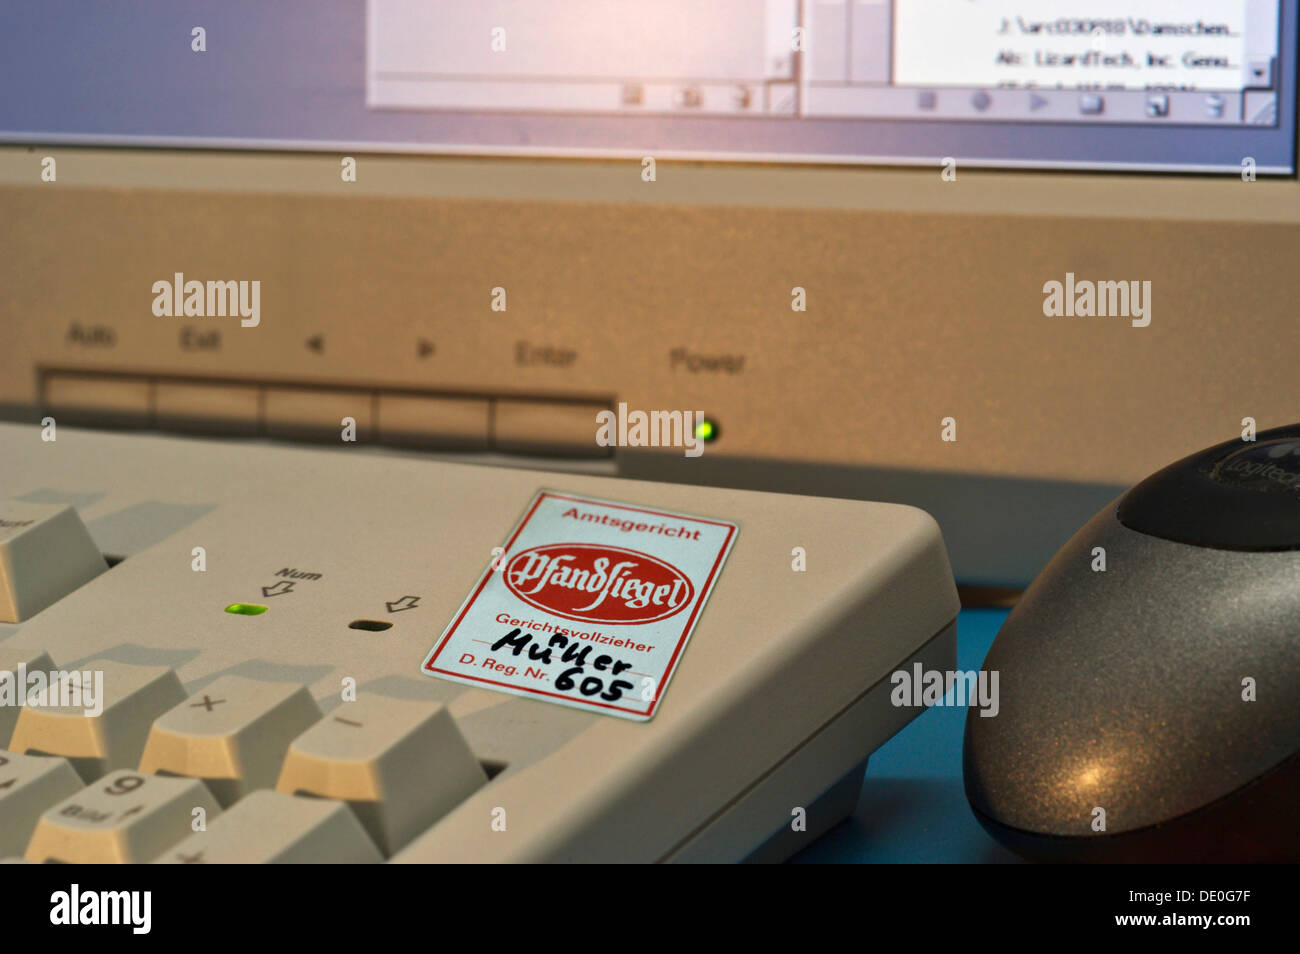 Computer workstation with a deposit stamp on the keyboard - Stock Image